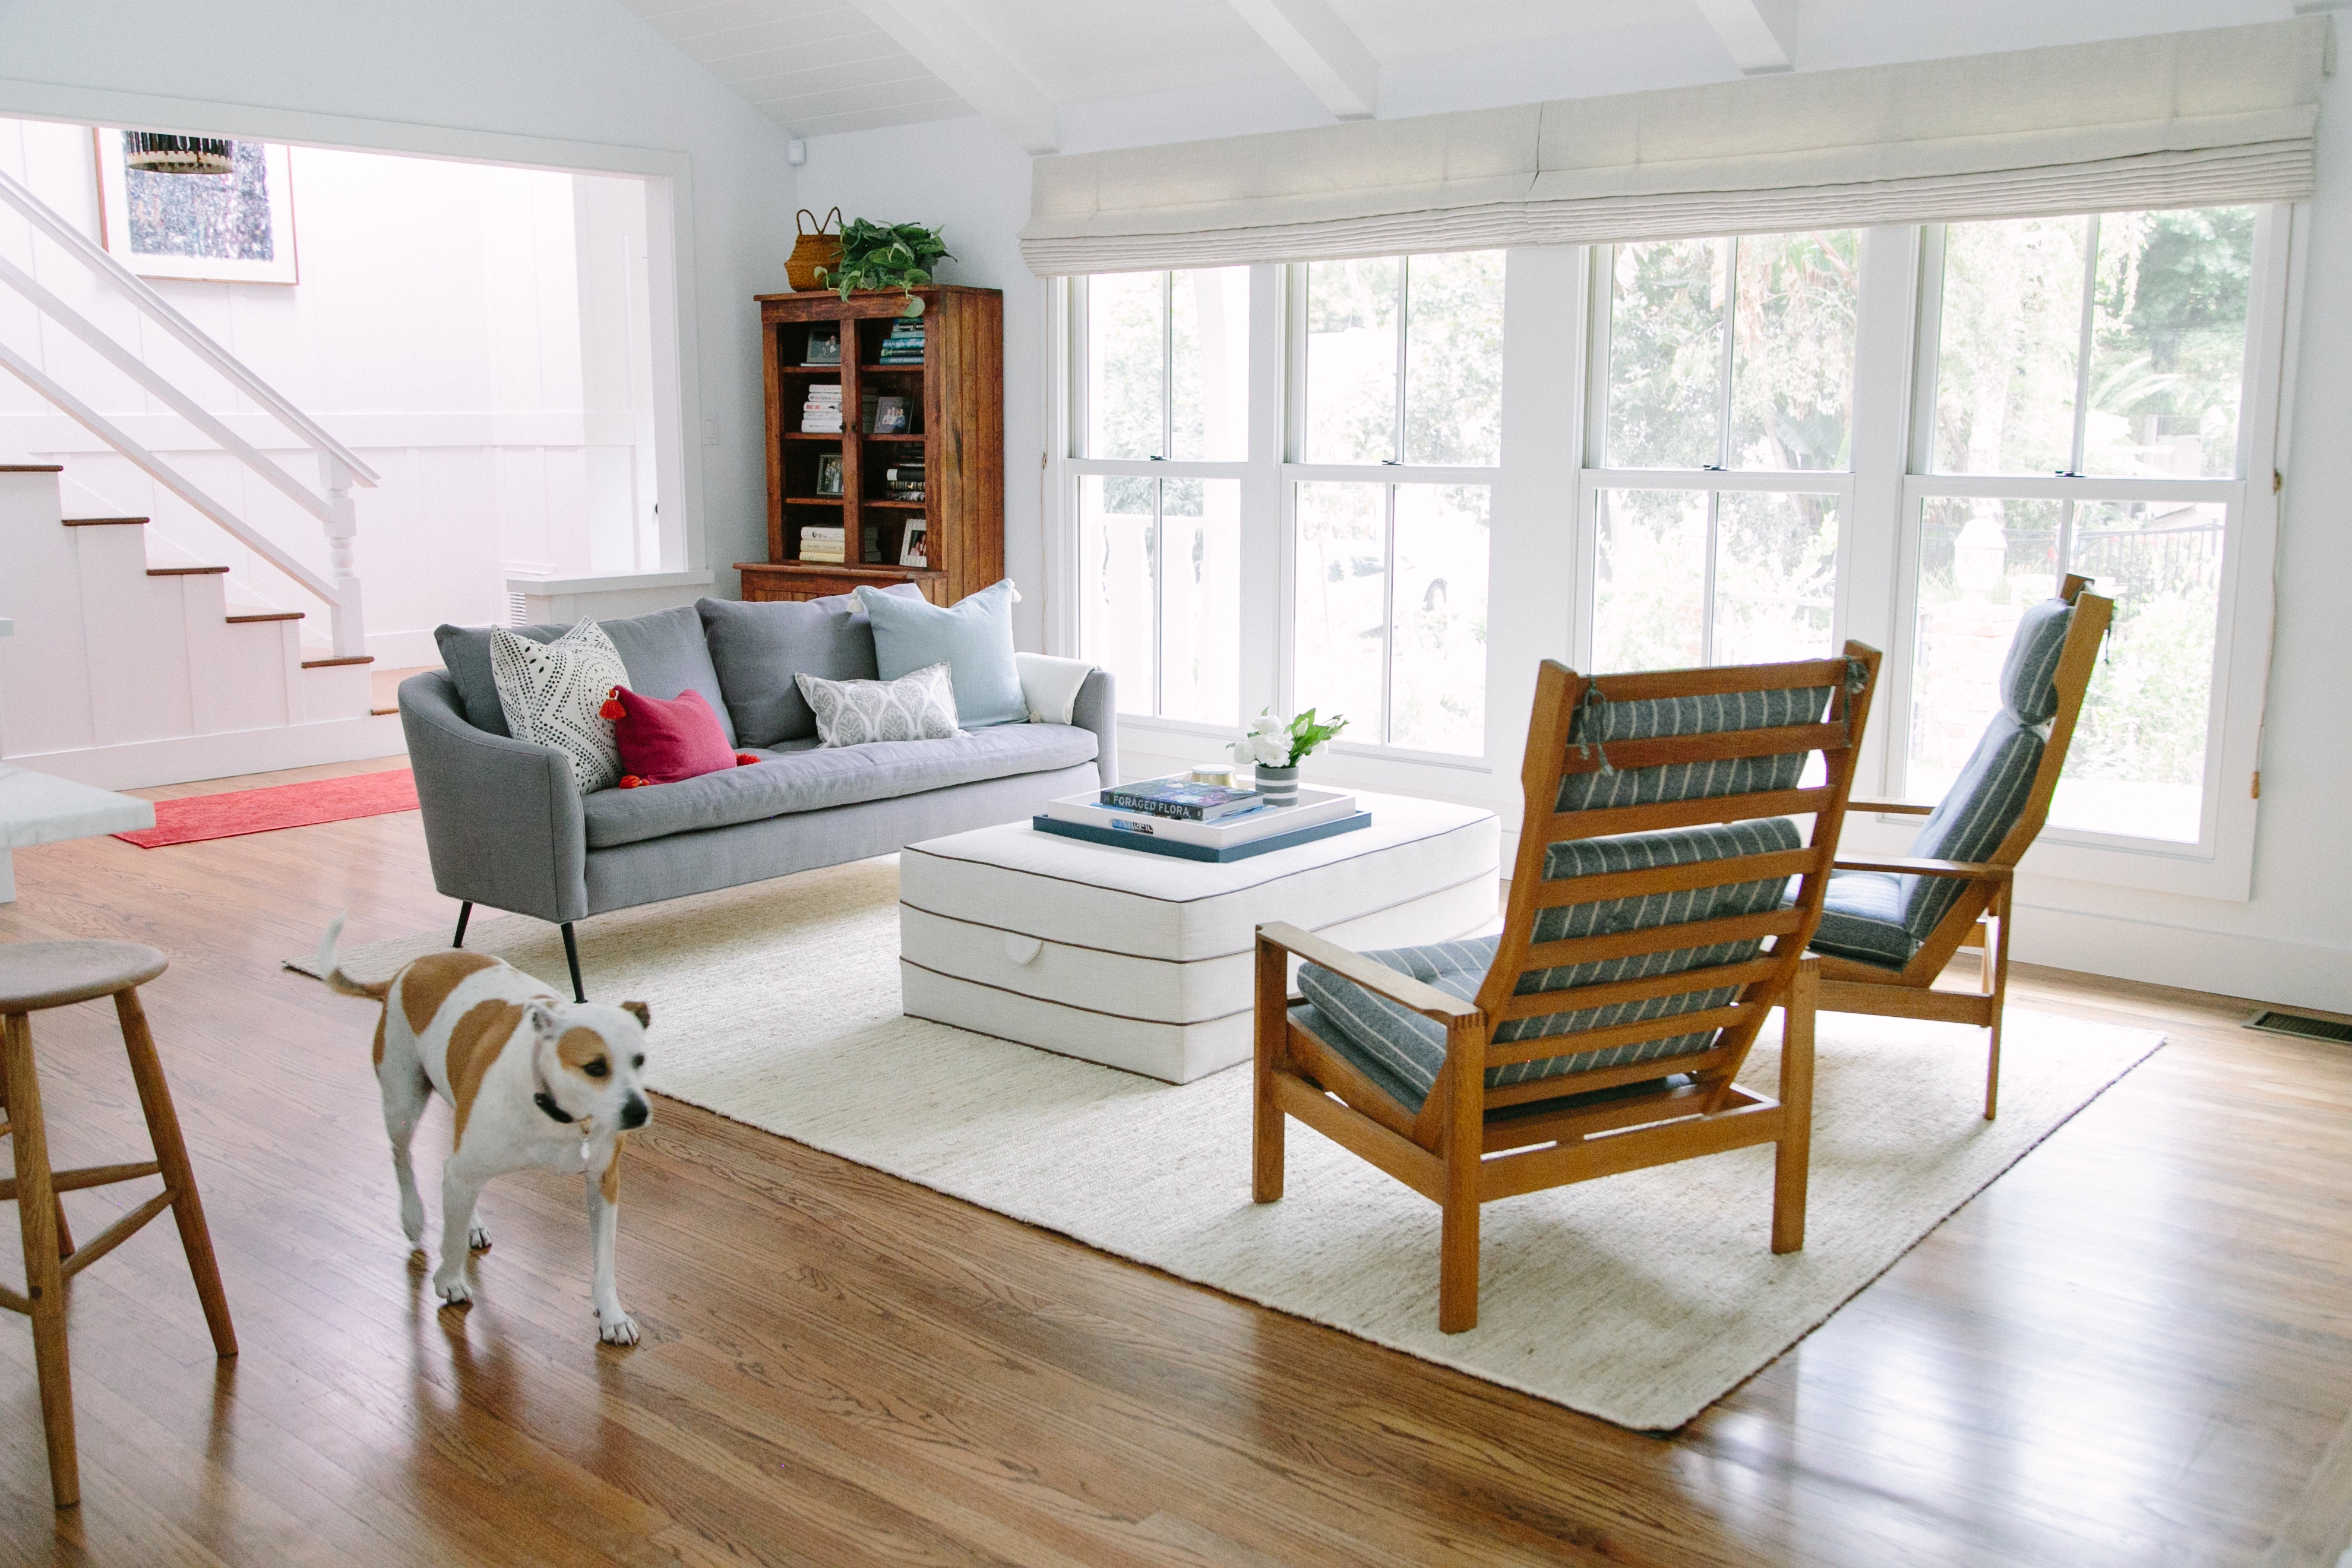 Choosing window treatments for Cape Cod-style living room might mean Roman shades in a neutral tone | Everhem